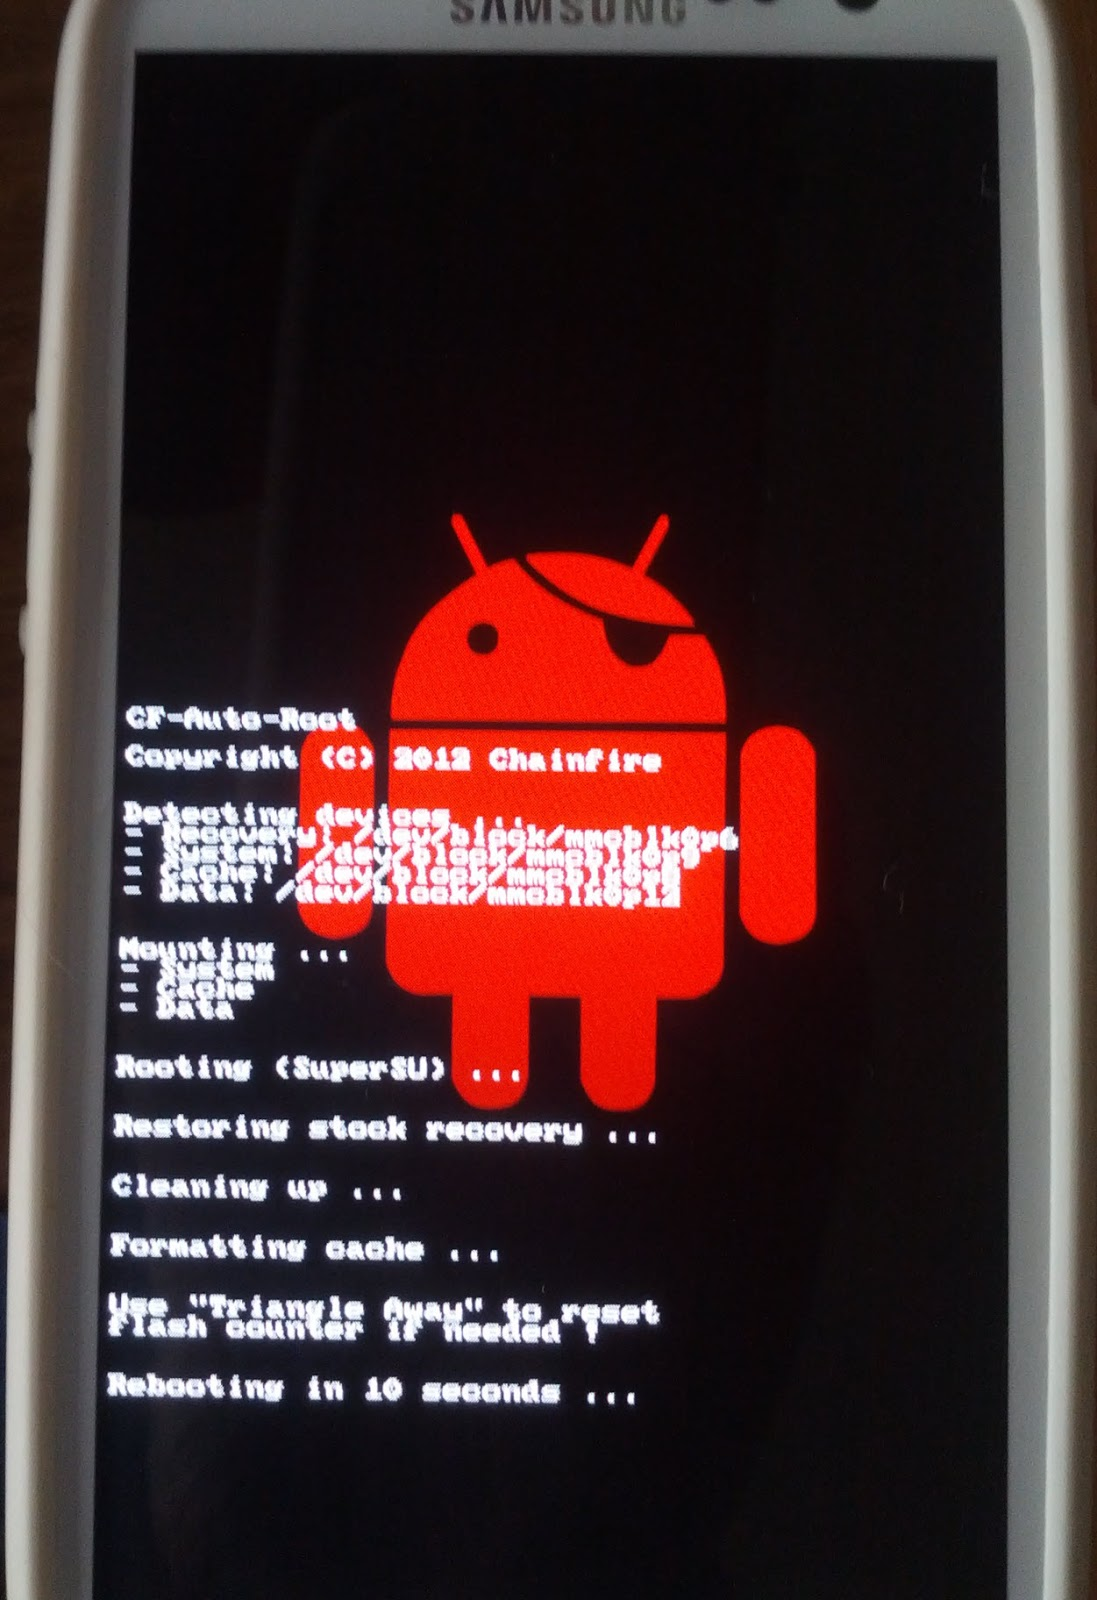 Samsung Galaxy S3 - CF-Auto-Root ~ Apps do Android